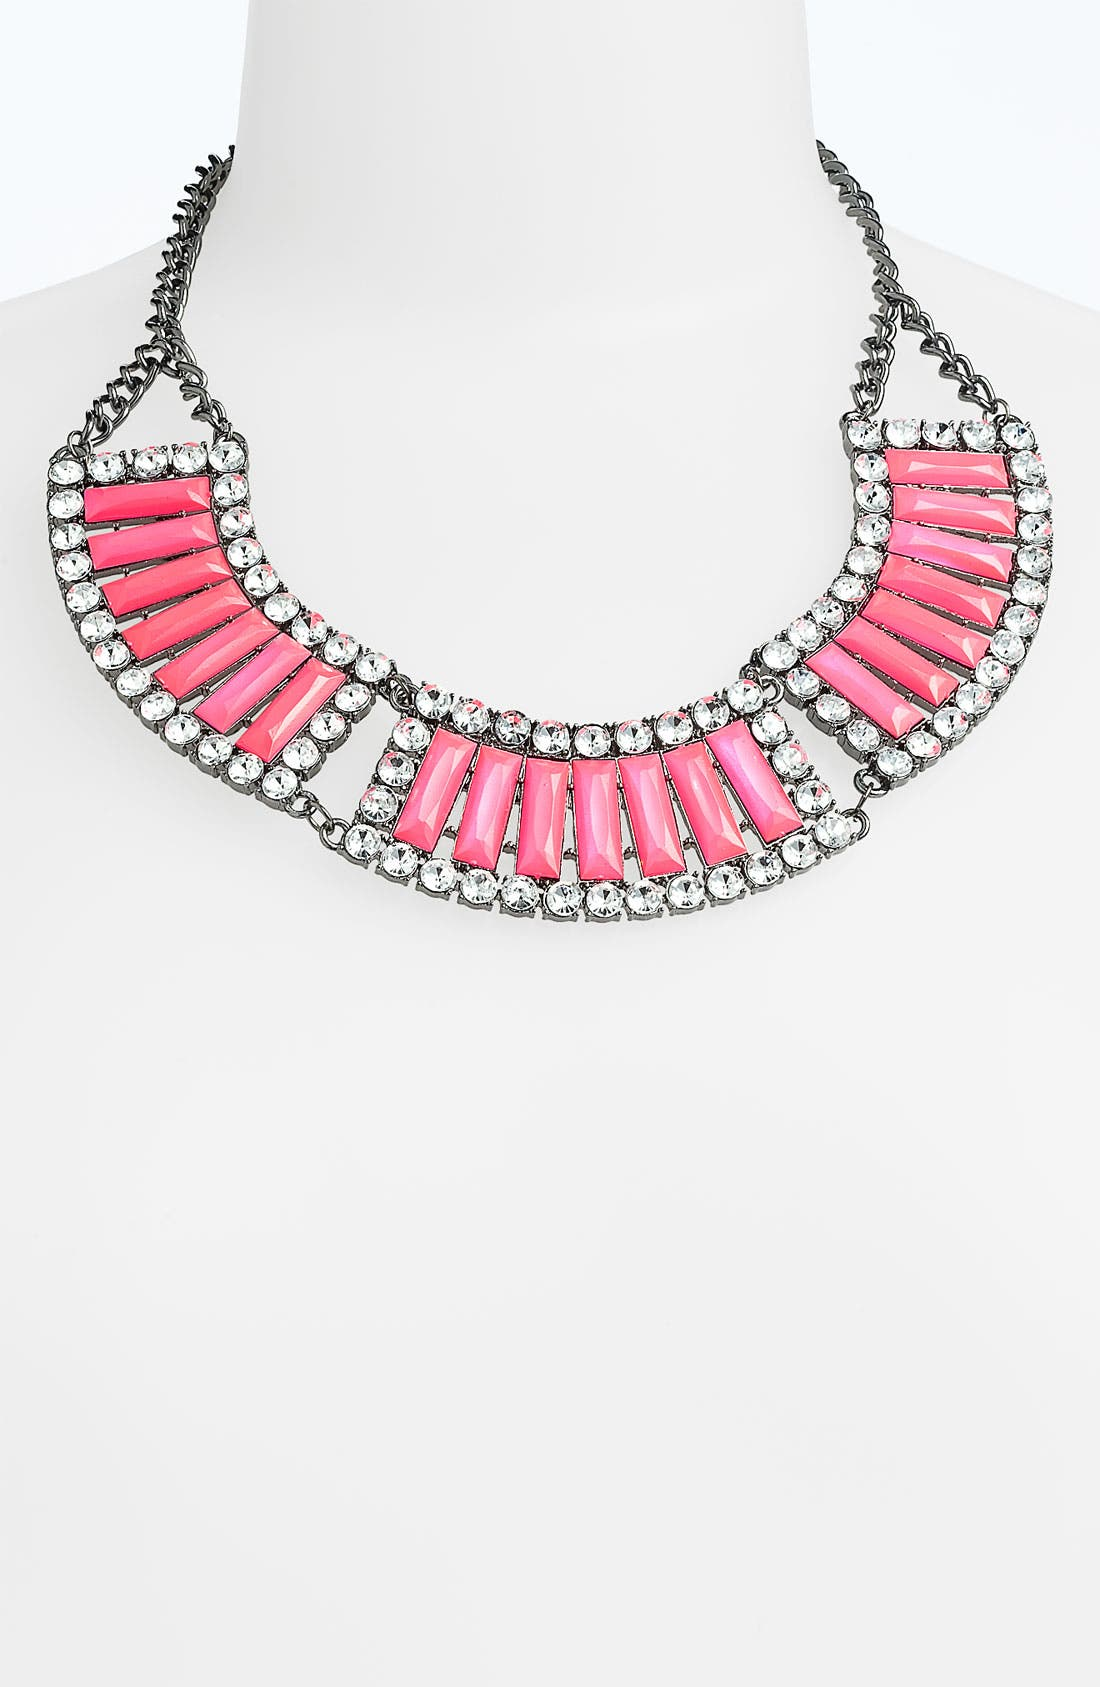 Main Image - Jewelry Fashions Bead & Crystal Collar Necklace